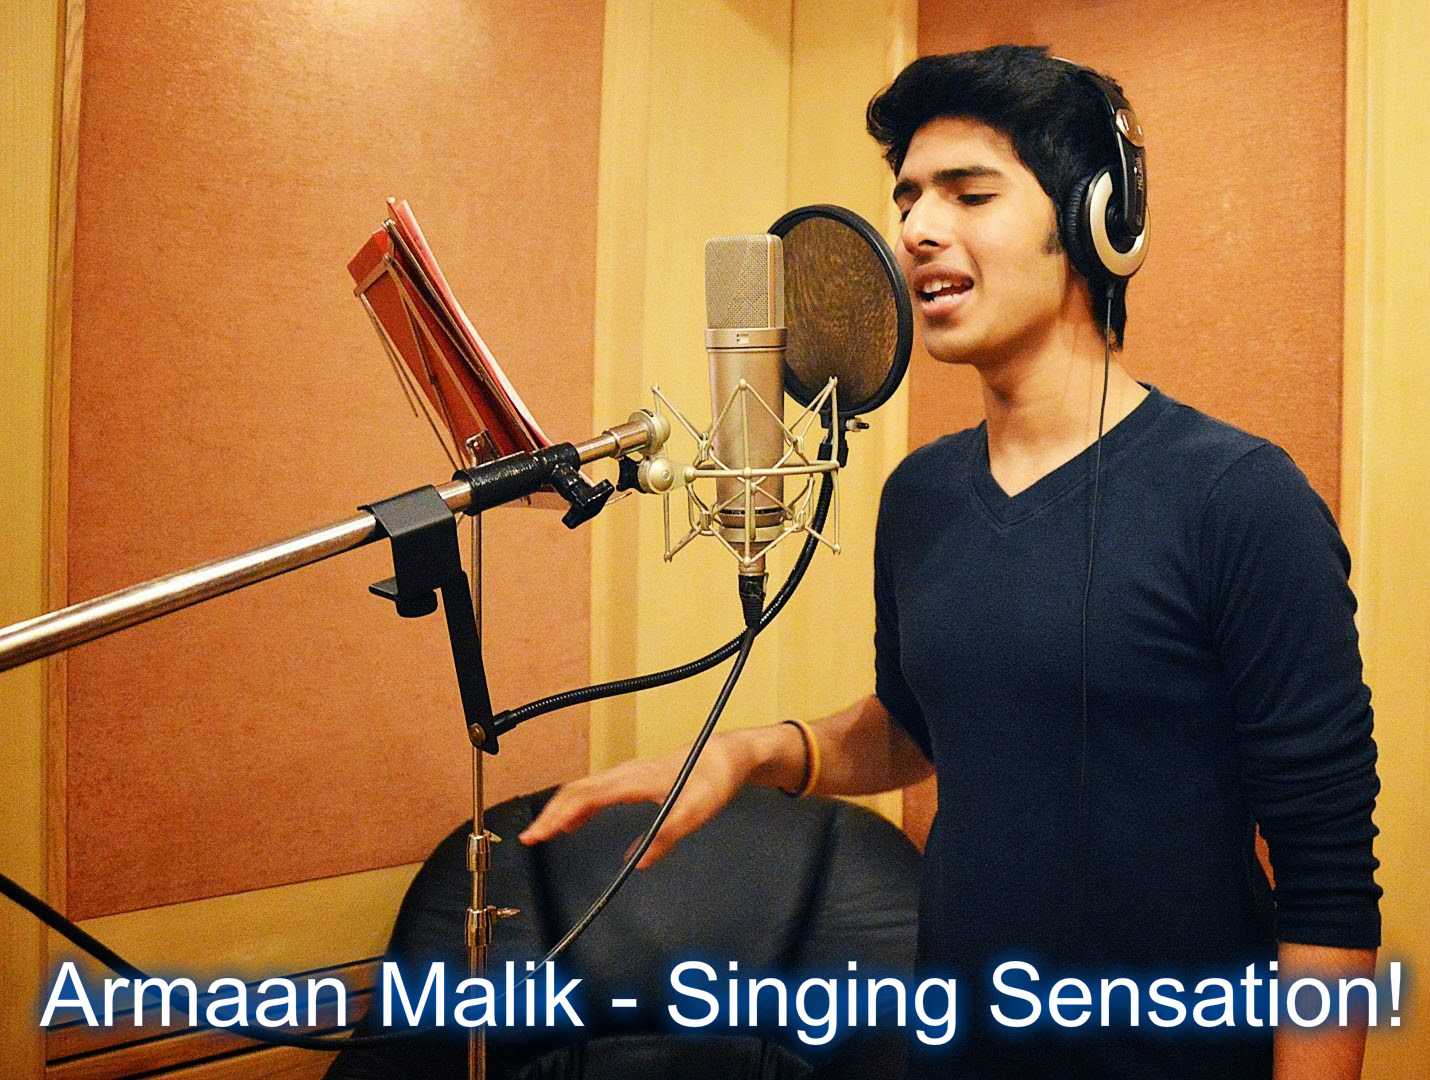 6 Armaan Malik Songs That You Will Love To Add To Your Playlist #Play&Repeat